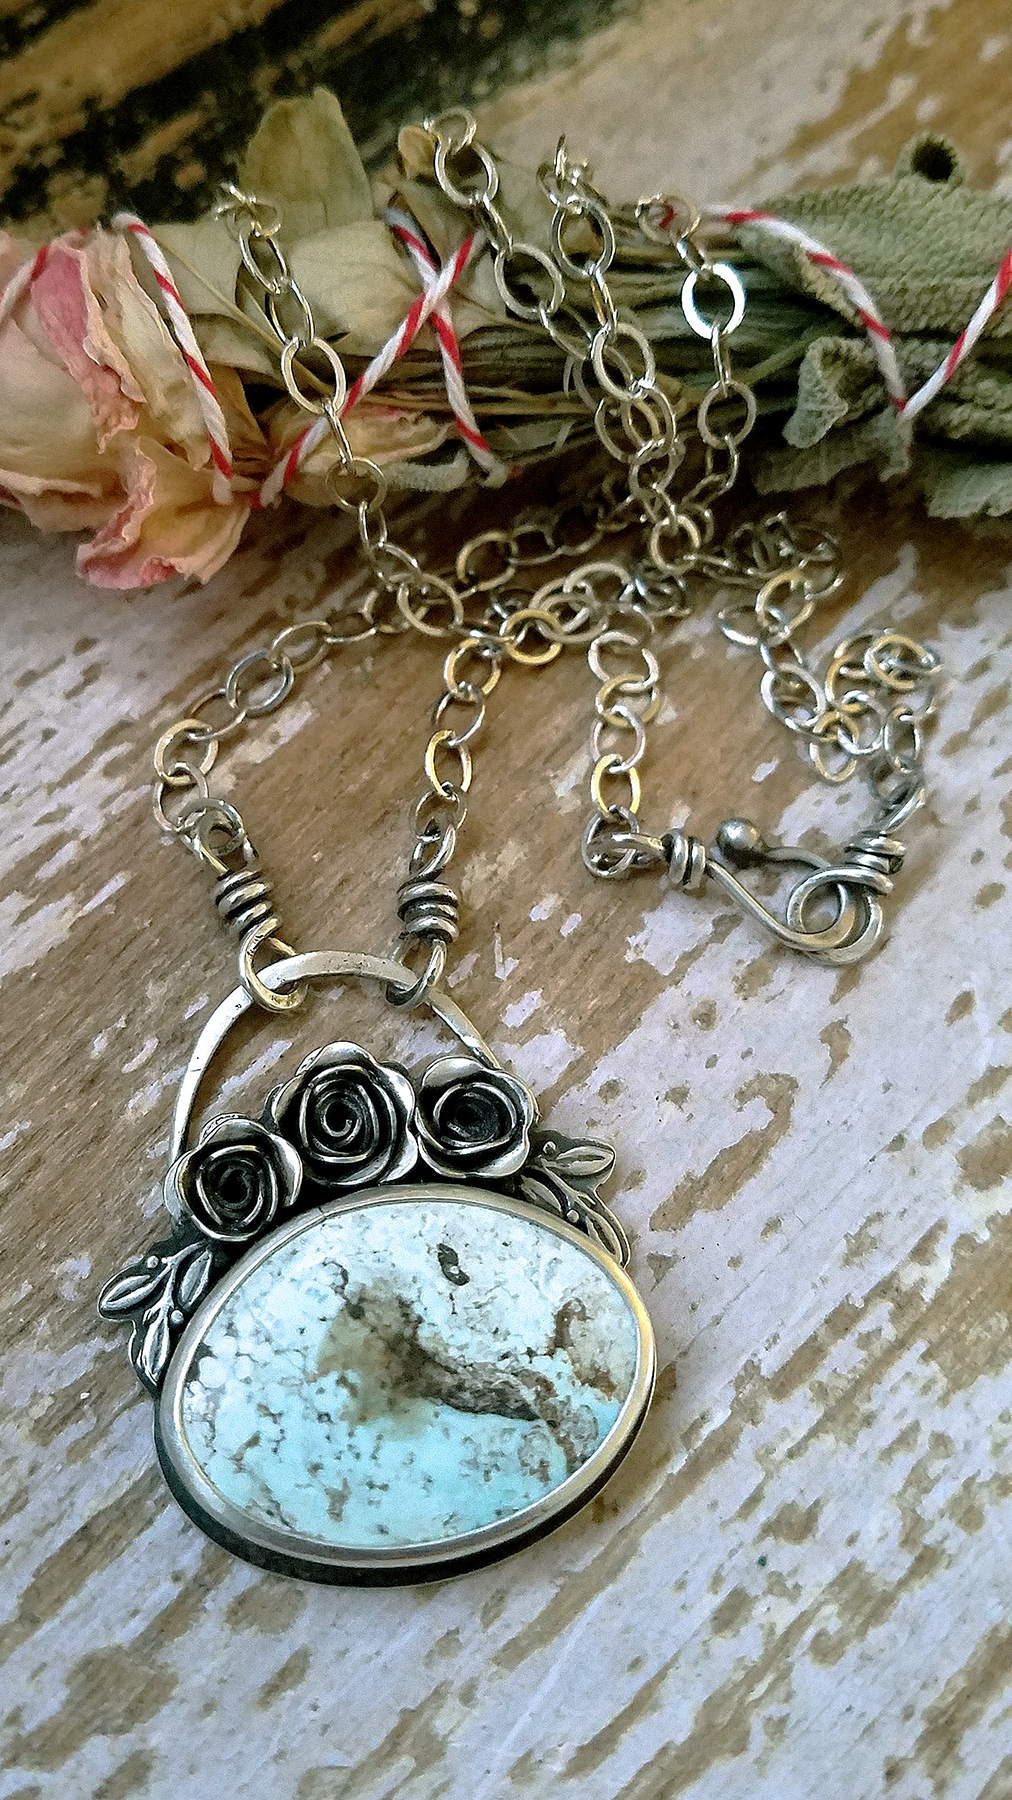 dry creek rose pendant